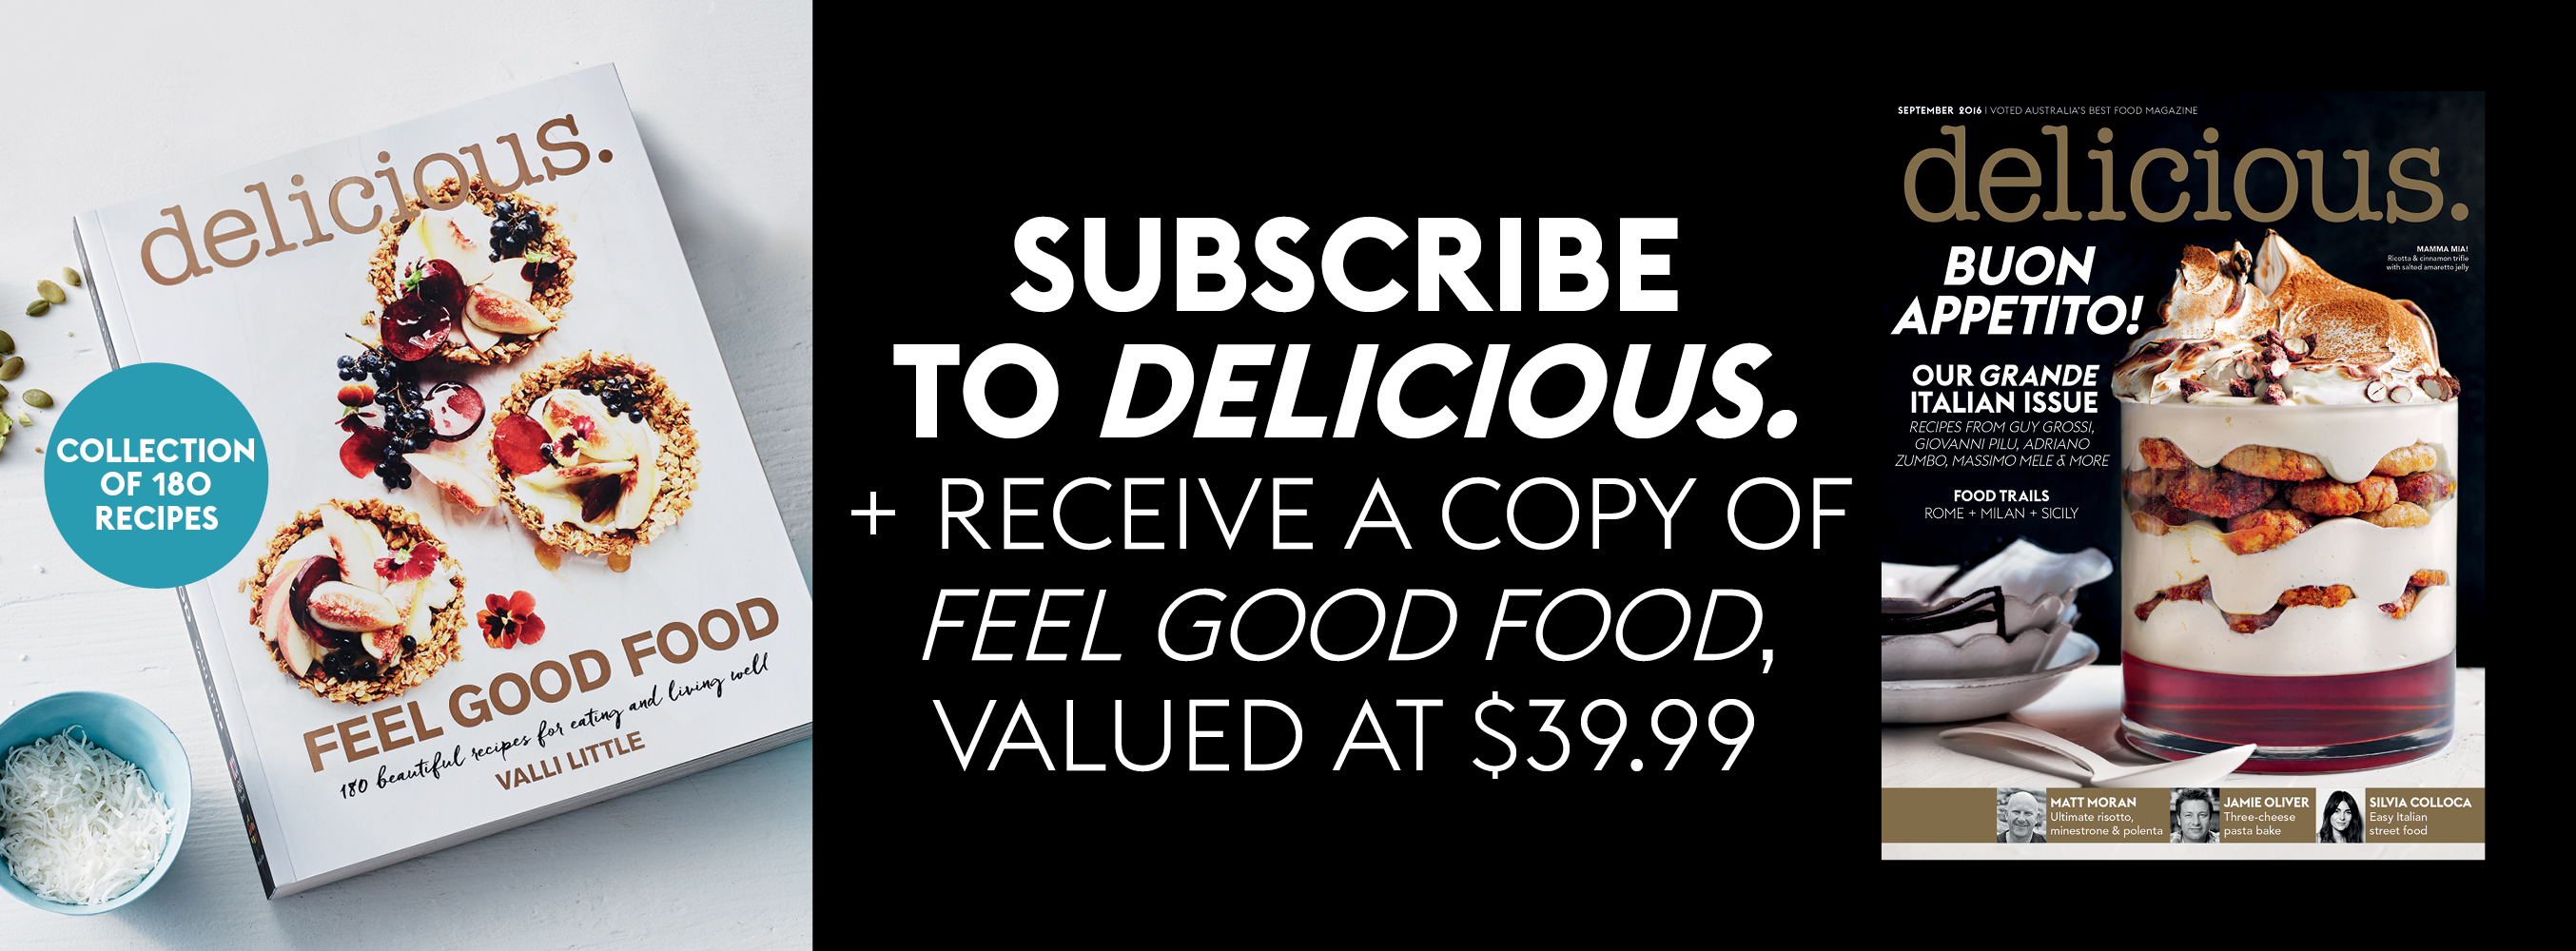 delicious. September issue offer